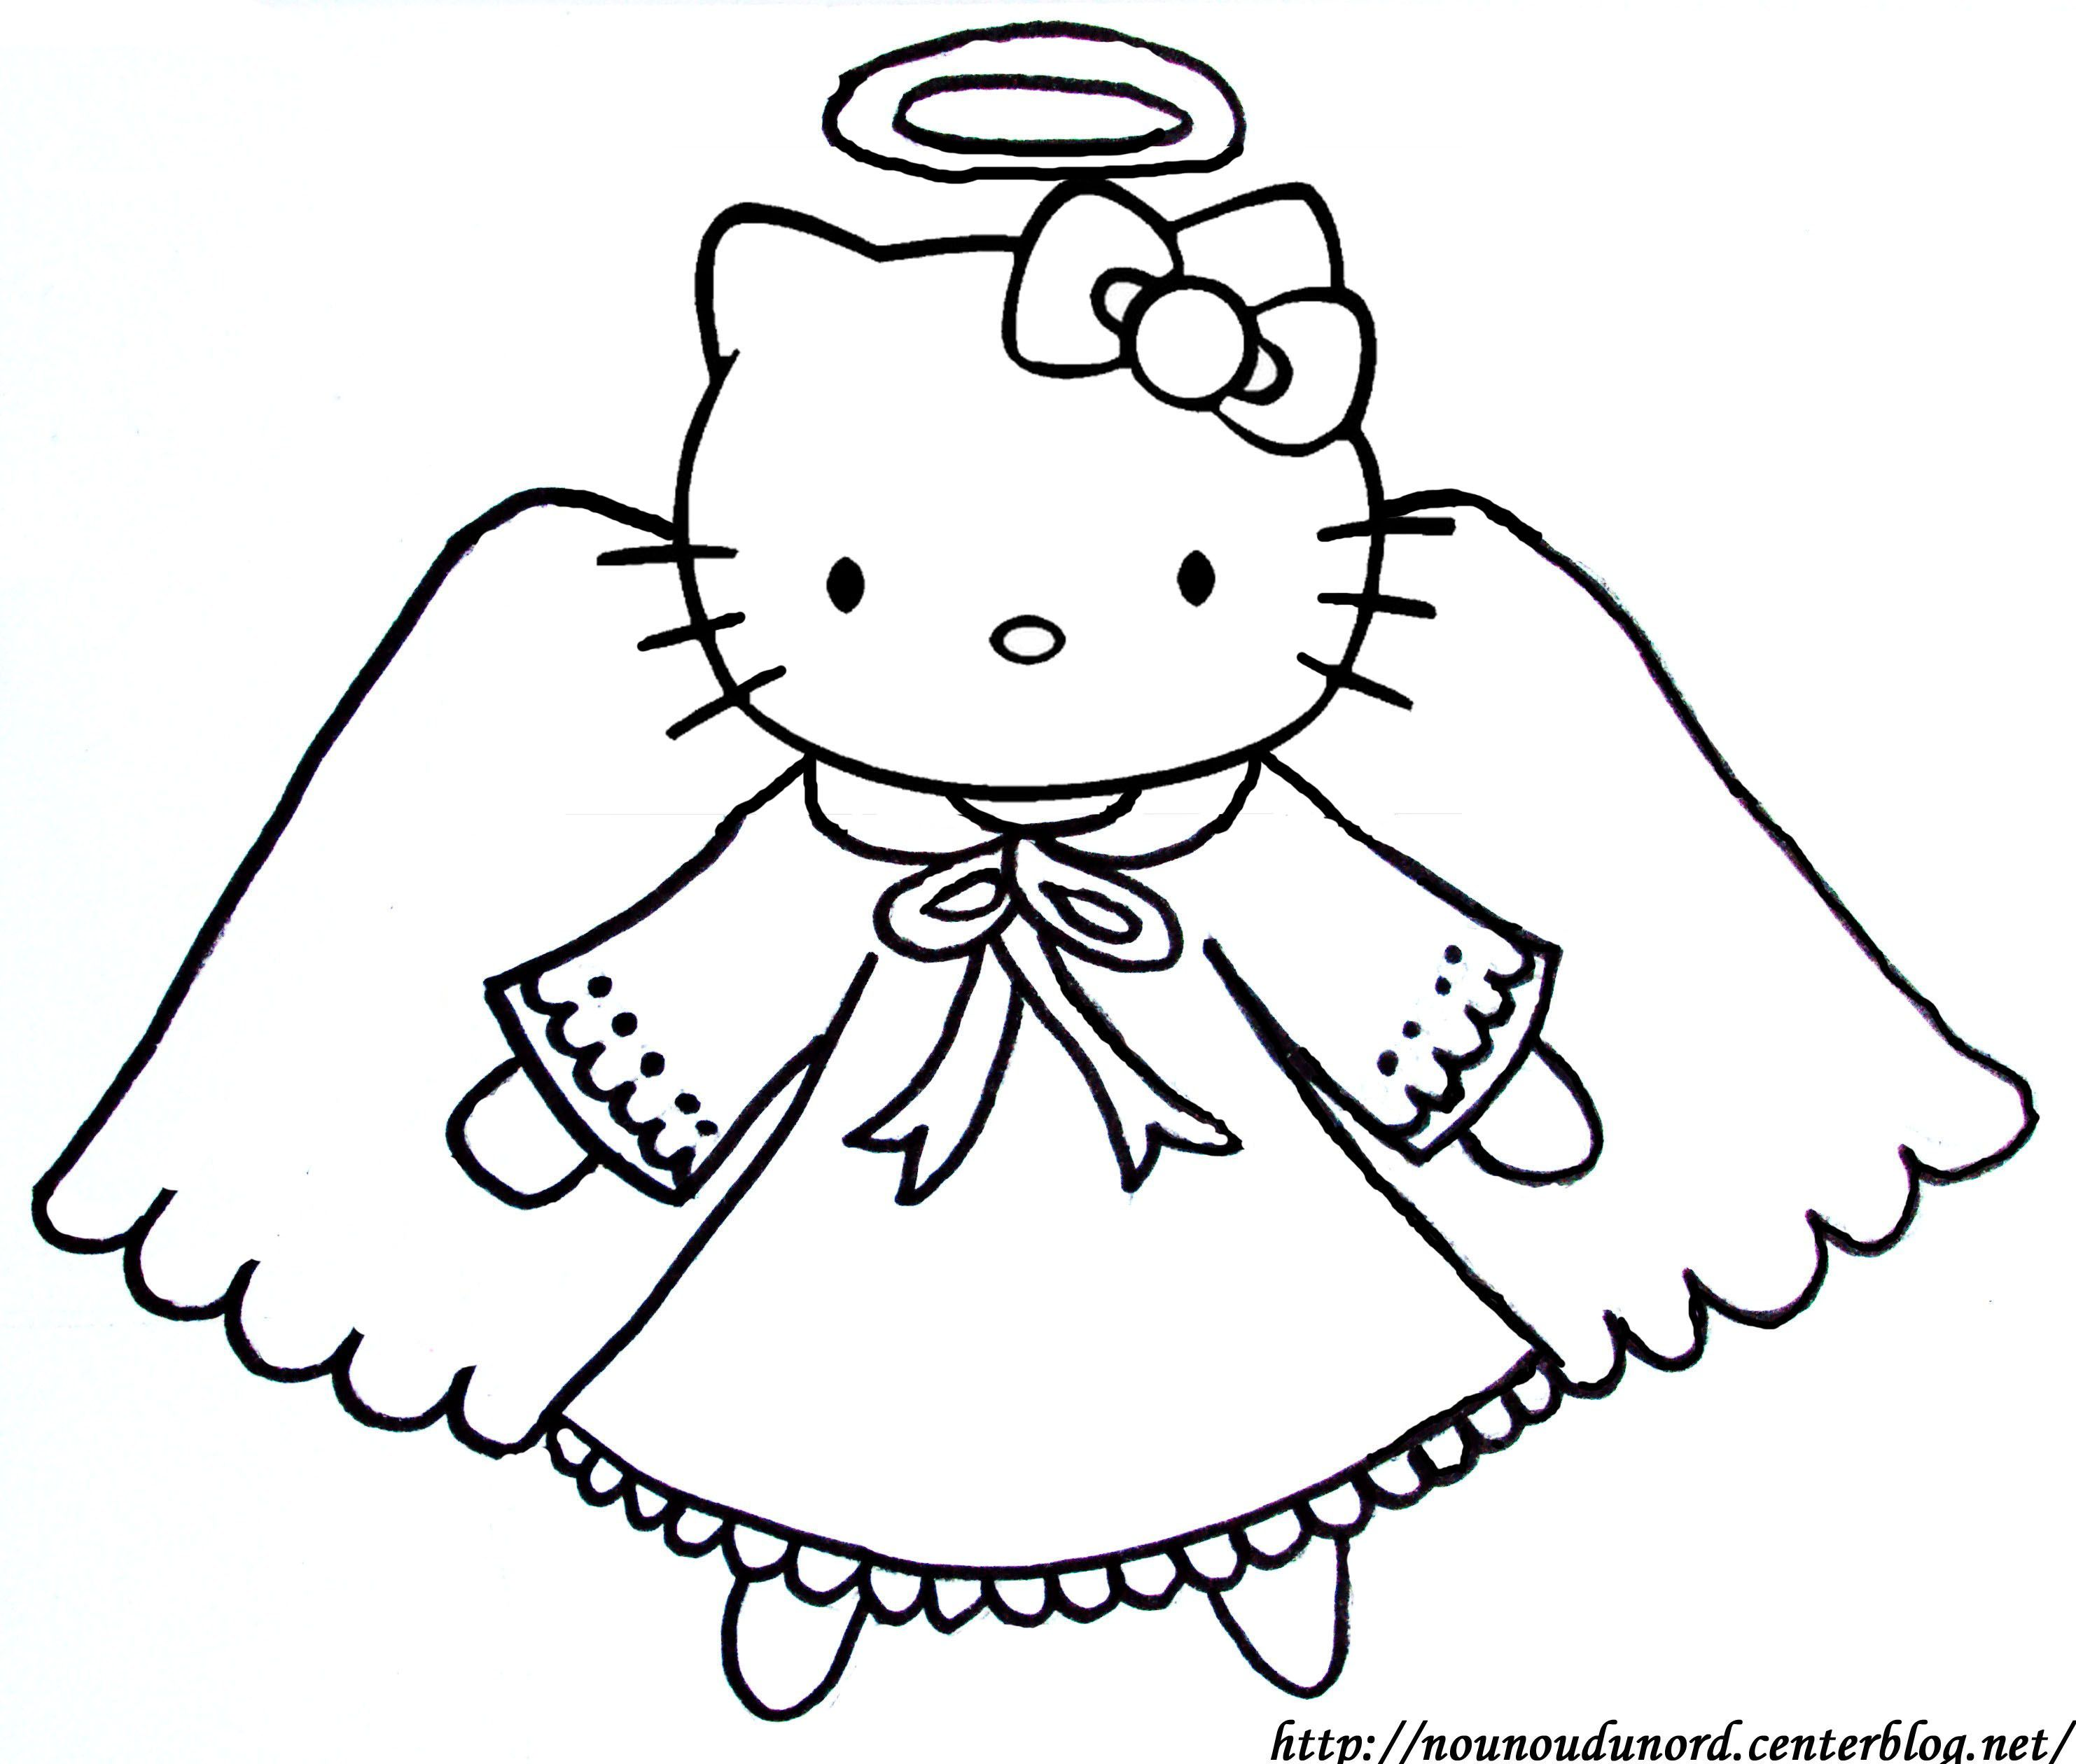 Coloriage hello kitty a imprimer - Coloriage ange ...